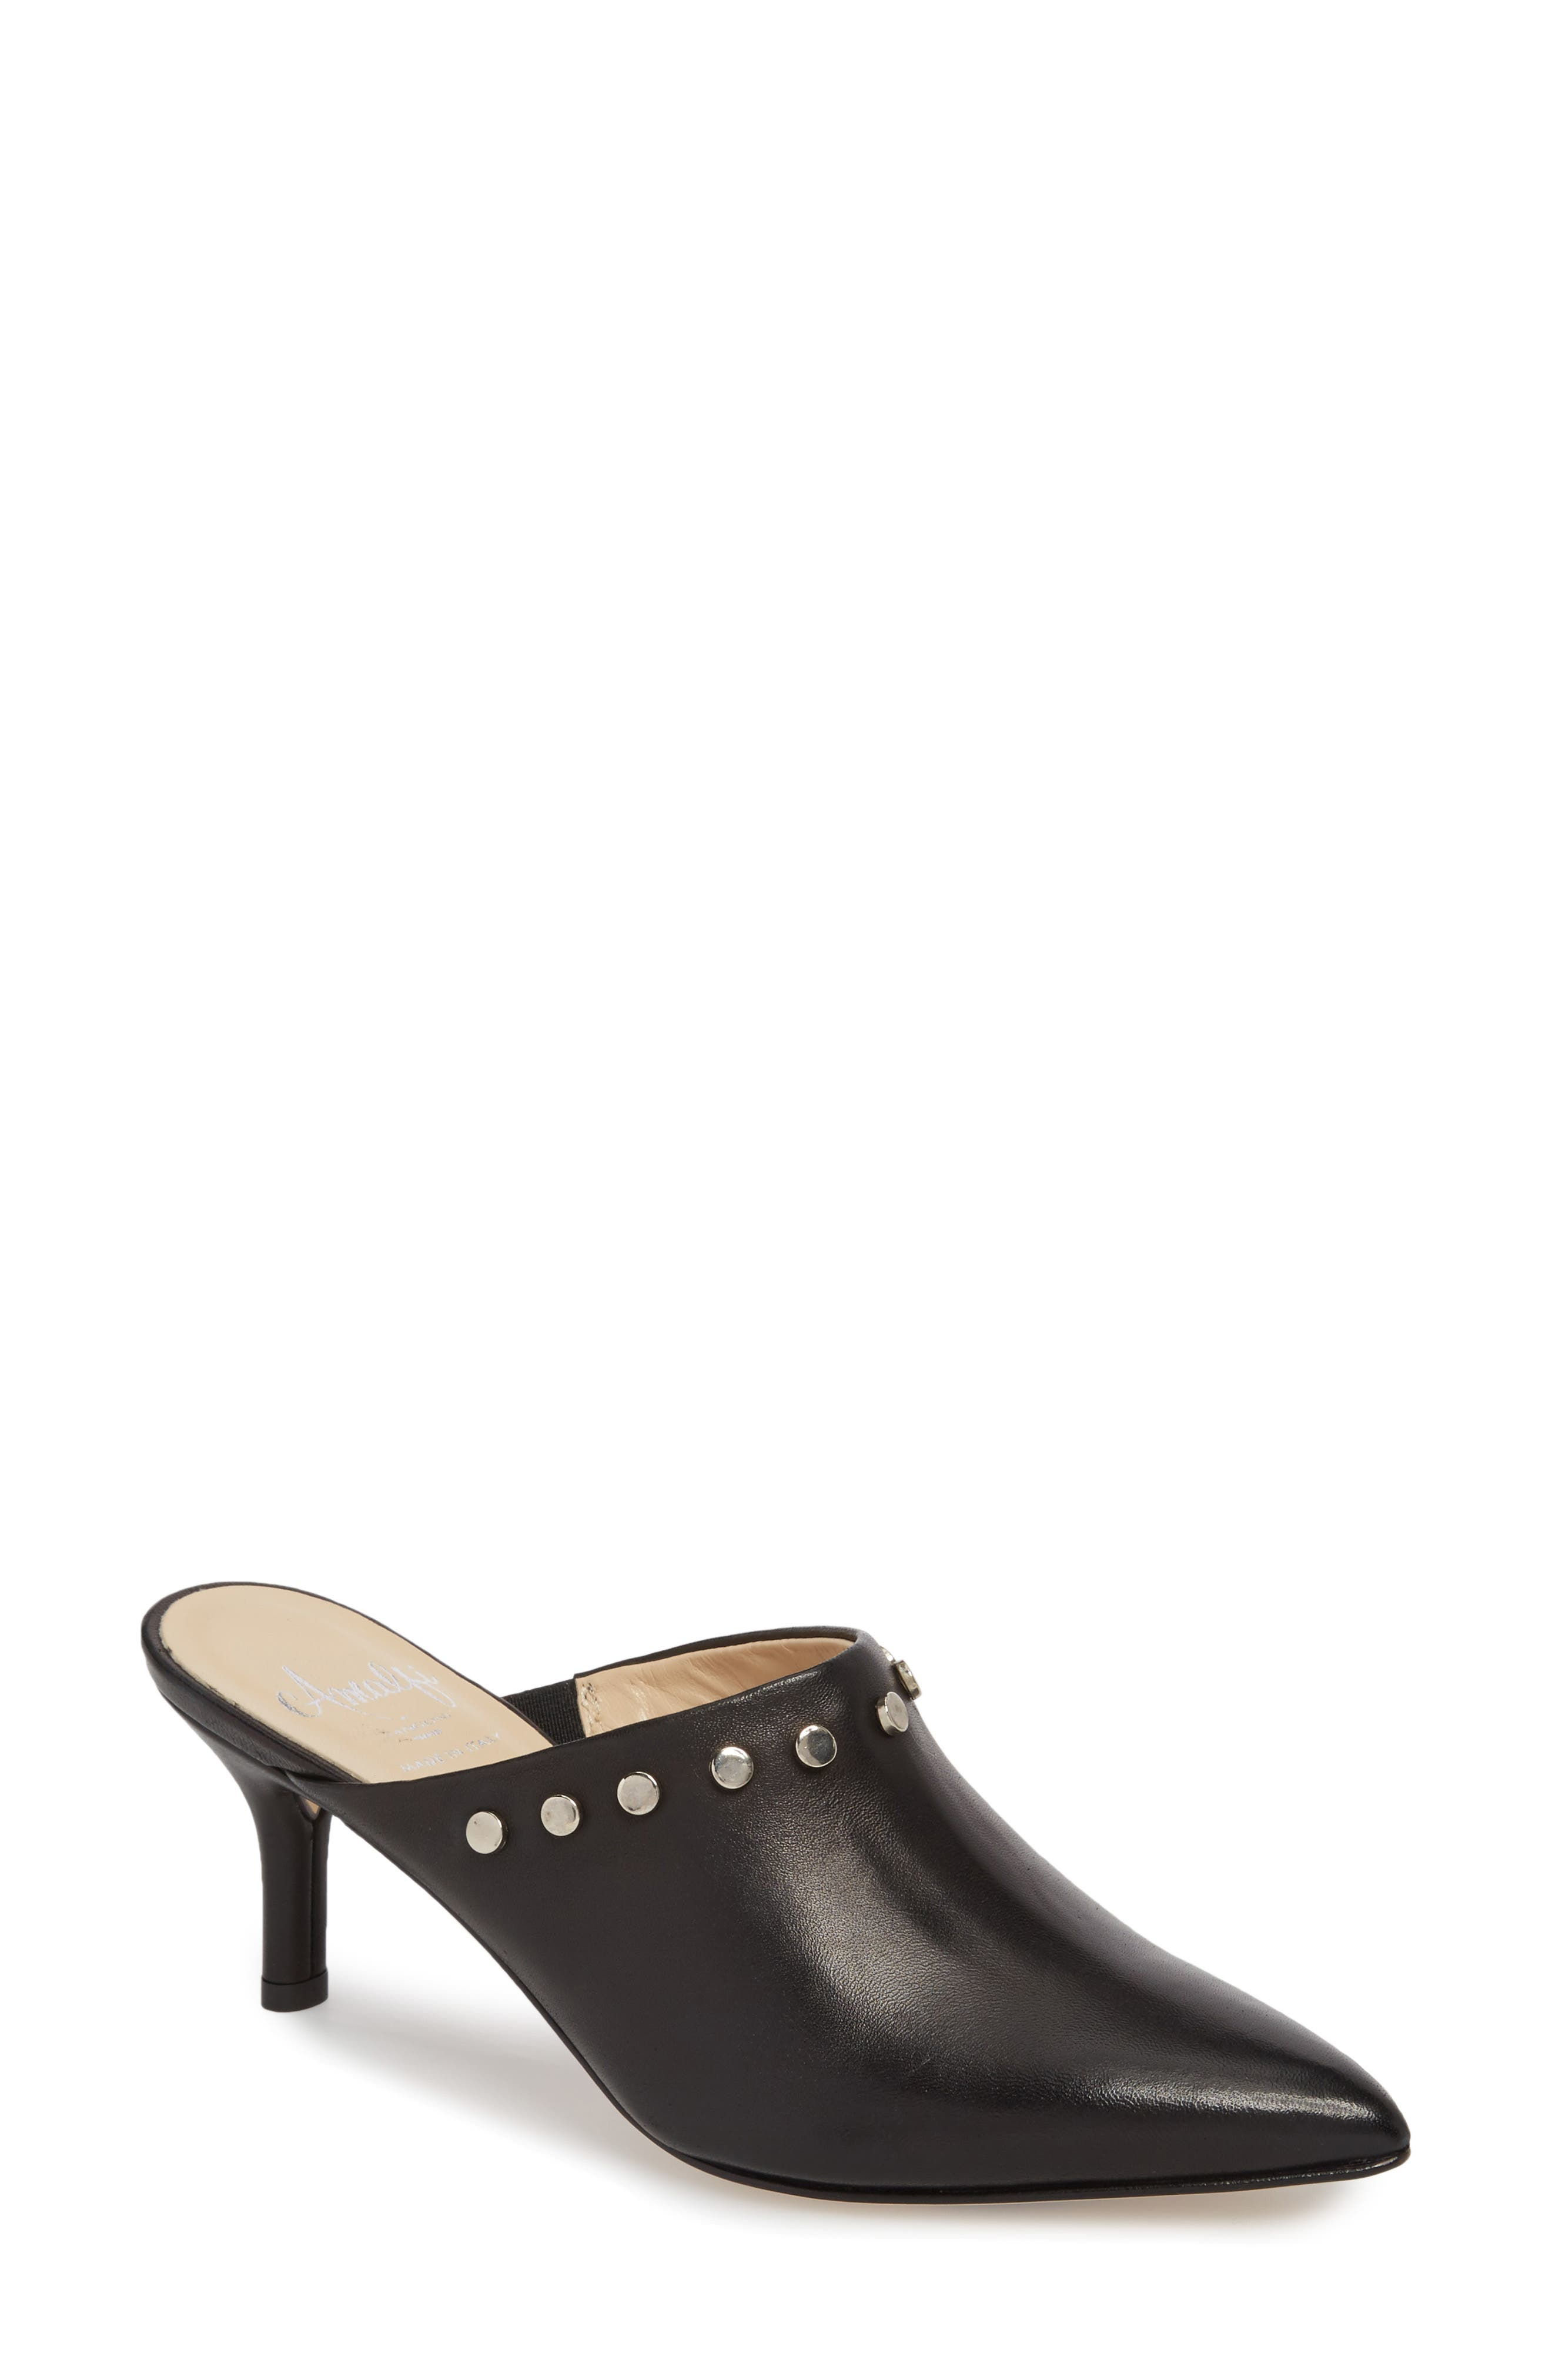 AMALFI BY RANGONI, Priamo Mule, Main thumbnail 1, color, BLACK LEATHER